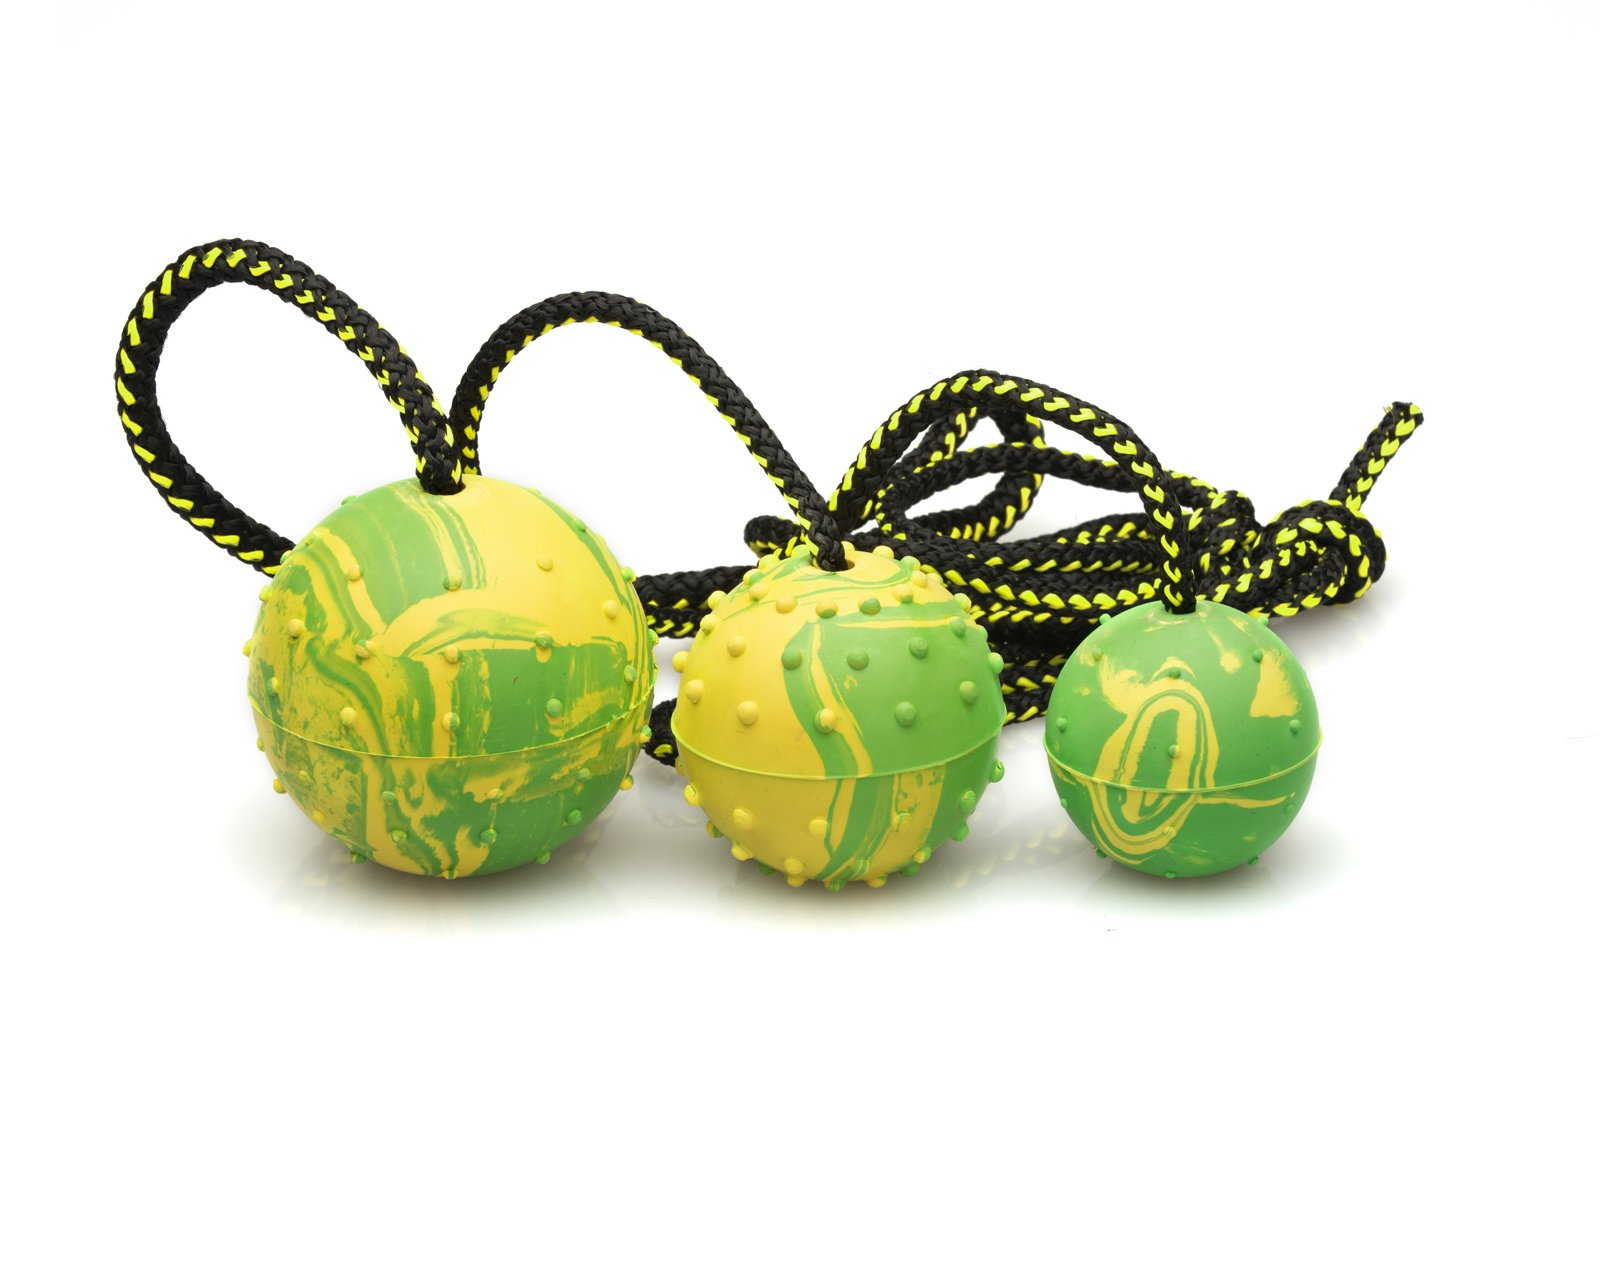 Dog Ball, Rubber with Rope - K9 Training, Reward, Fetch - 3'' (75mm)